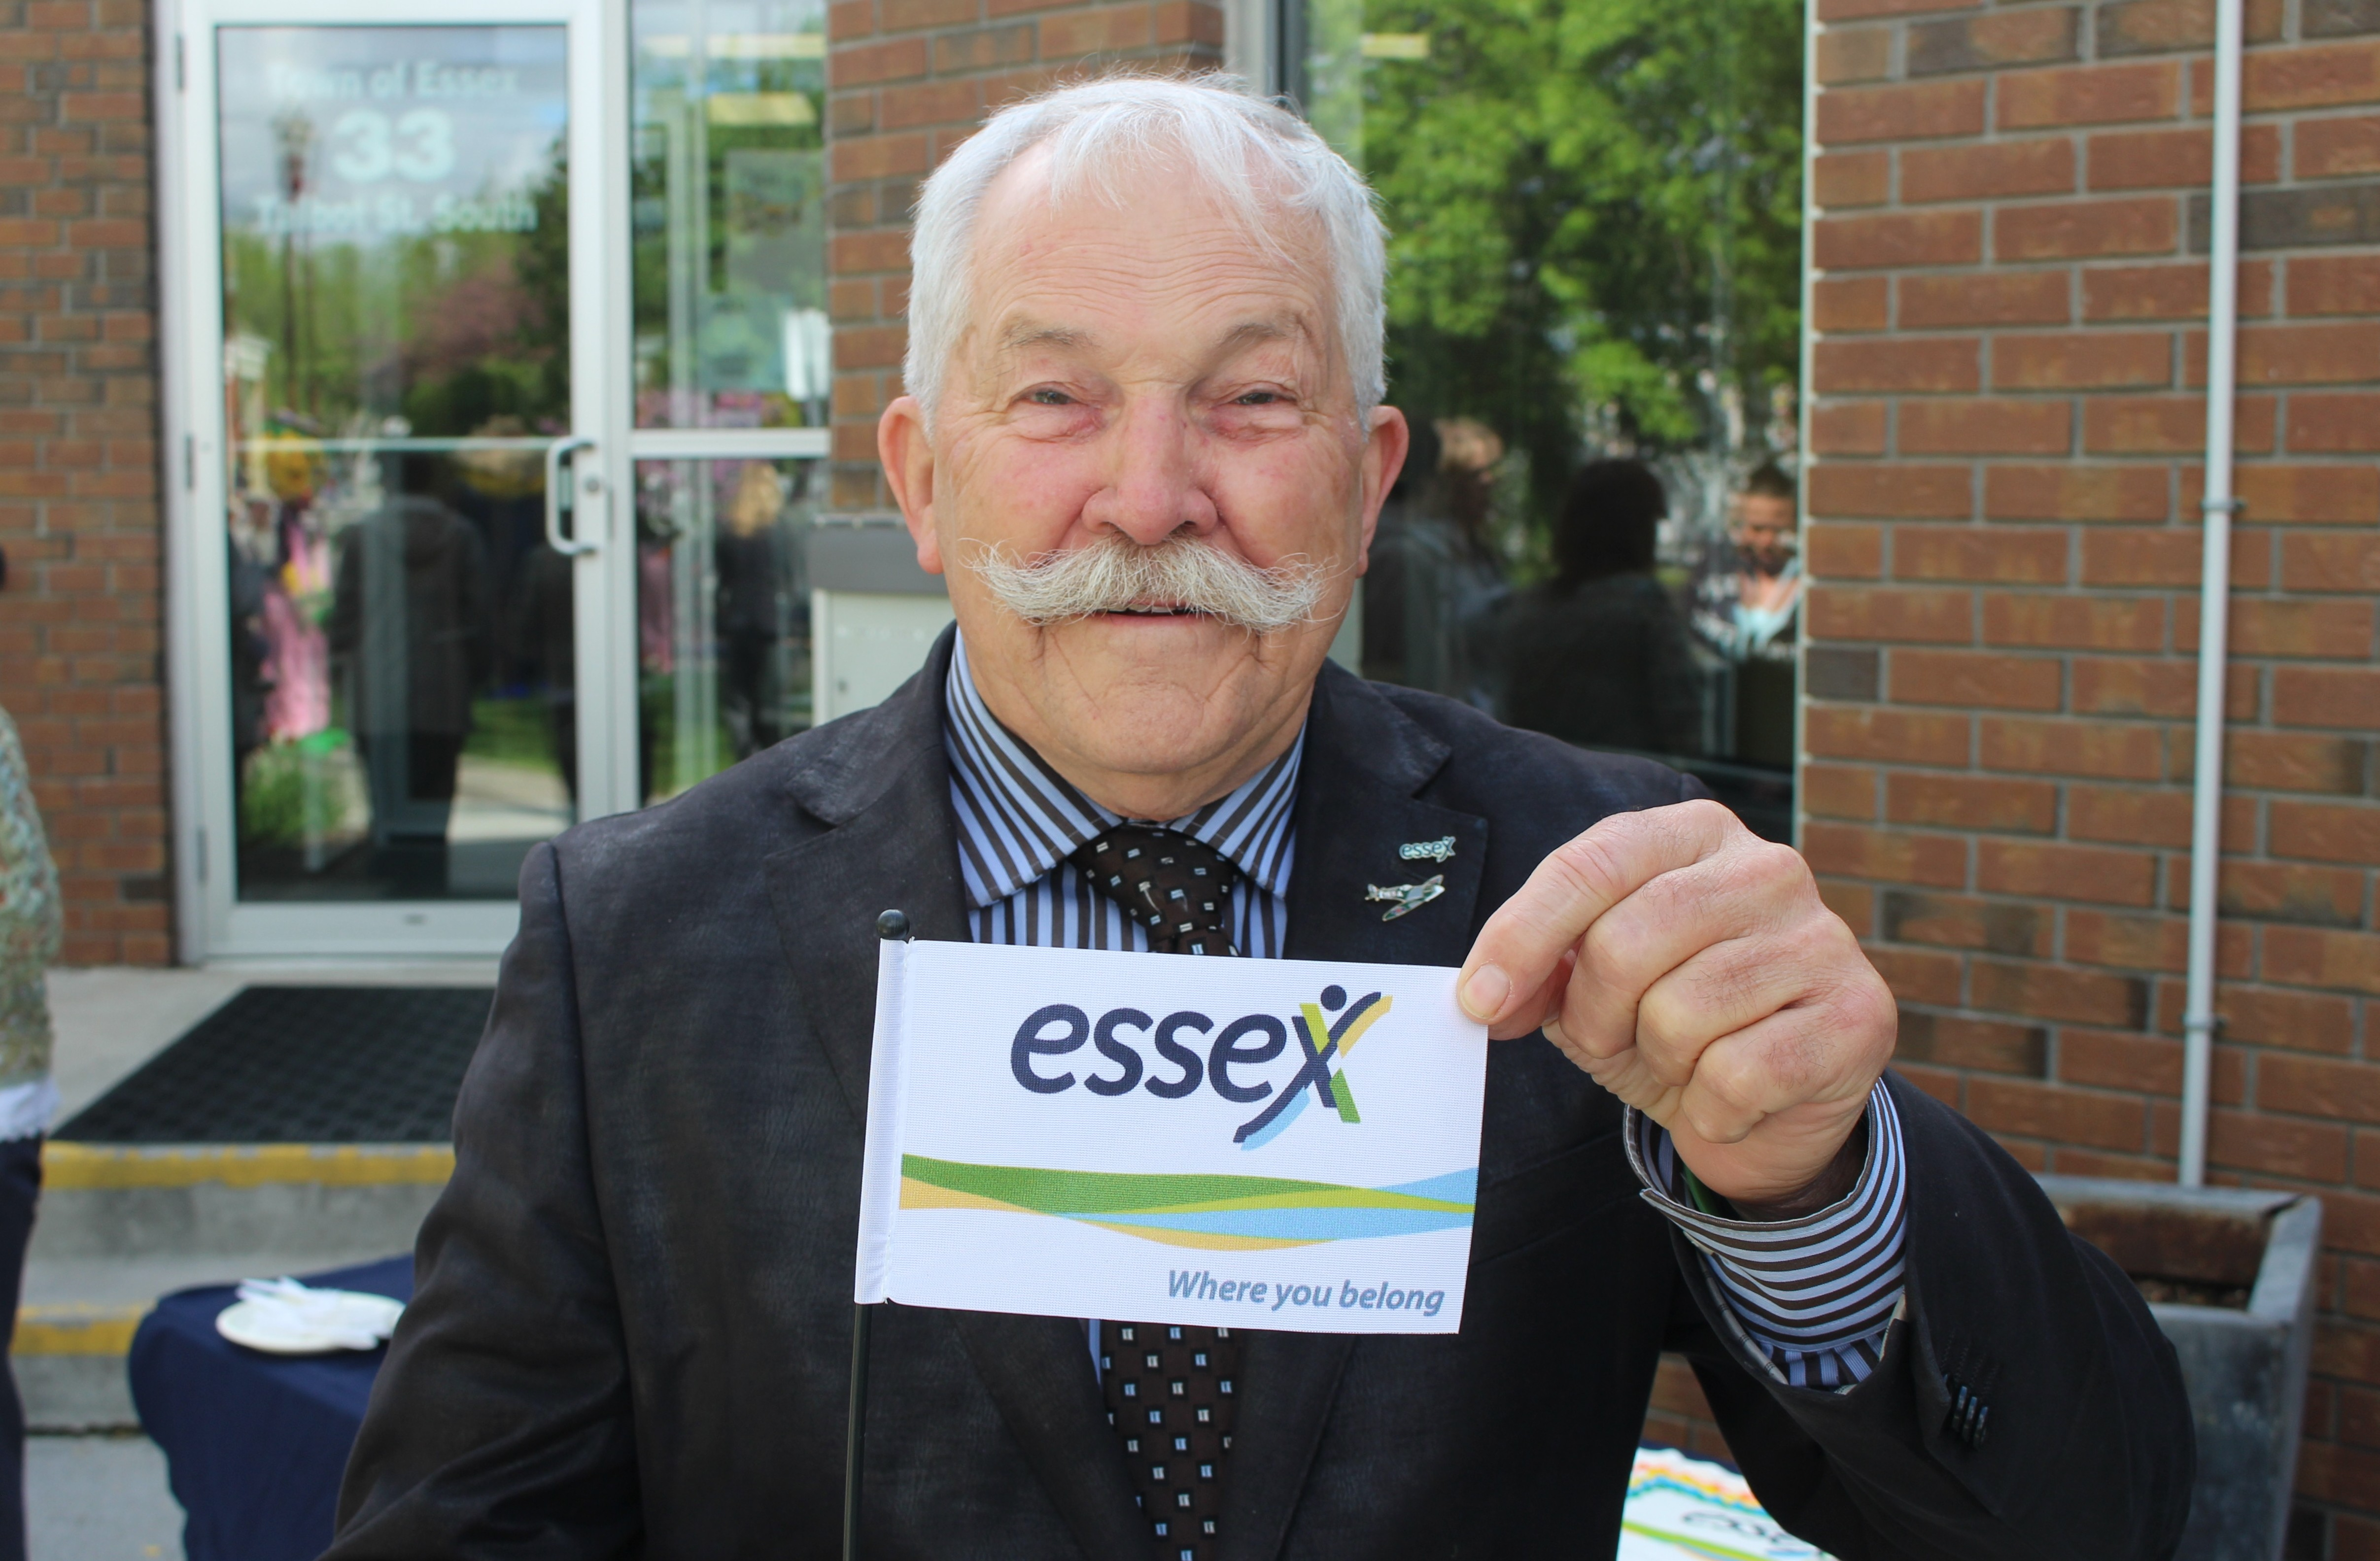 Essex Mayor Ron McDermott holds up a mini version of his towns new flag, May 13, 2015. (Photo by Mike Vlasveld)